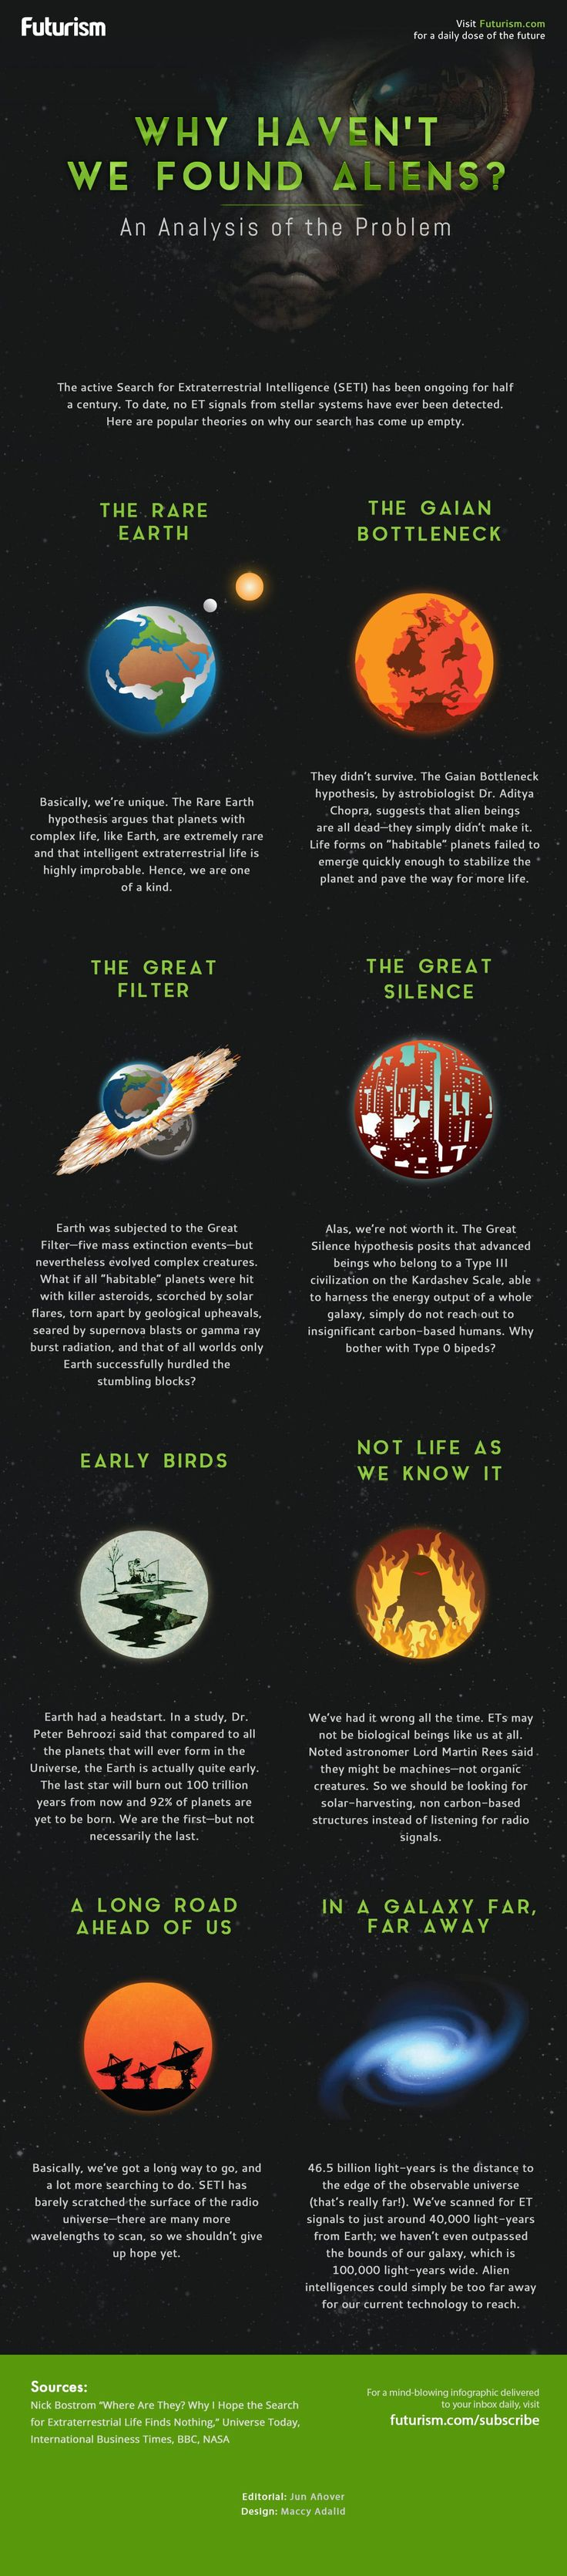 Why Haven't We Found Aliens? #Infographic #Aliens